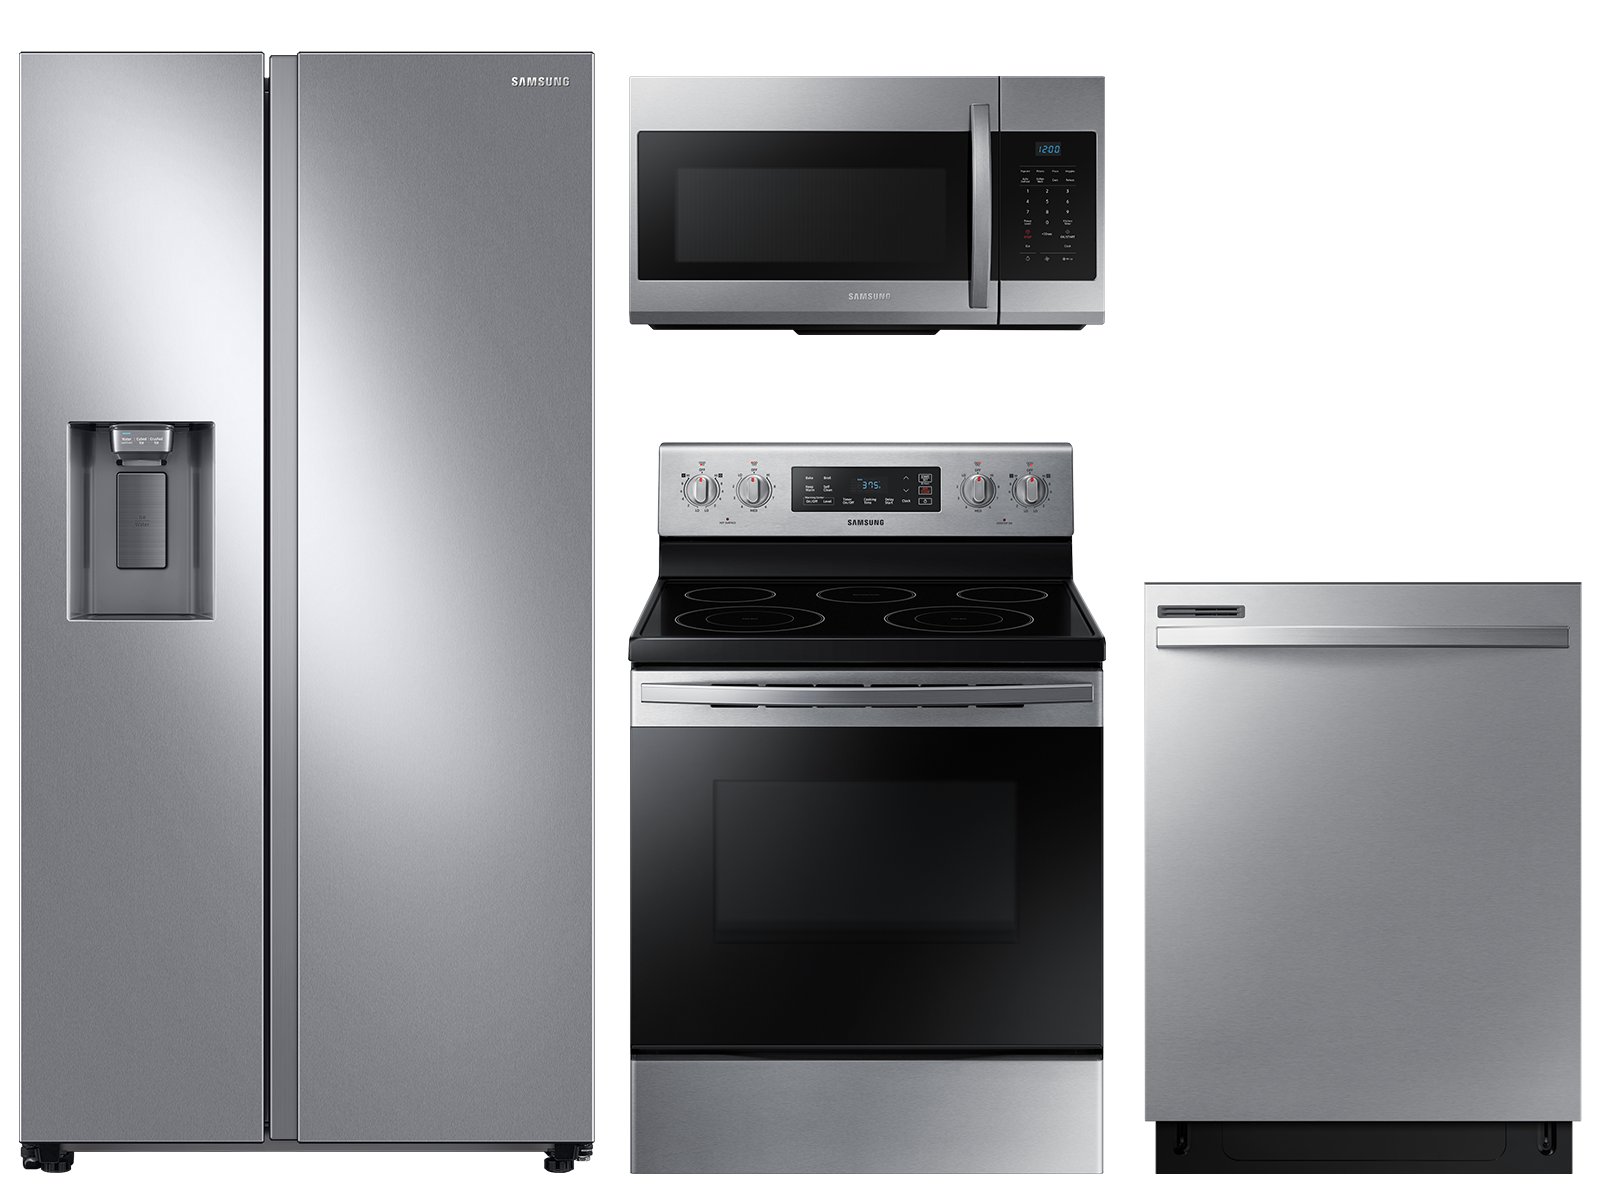 Samsung Large capacity Side-by-Side refrigerator & electric range package in stainless steel